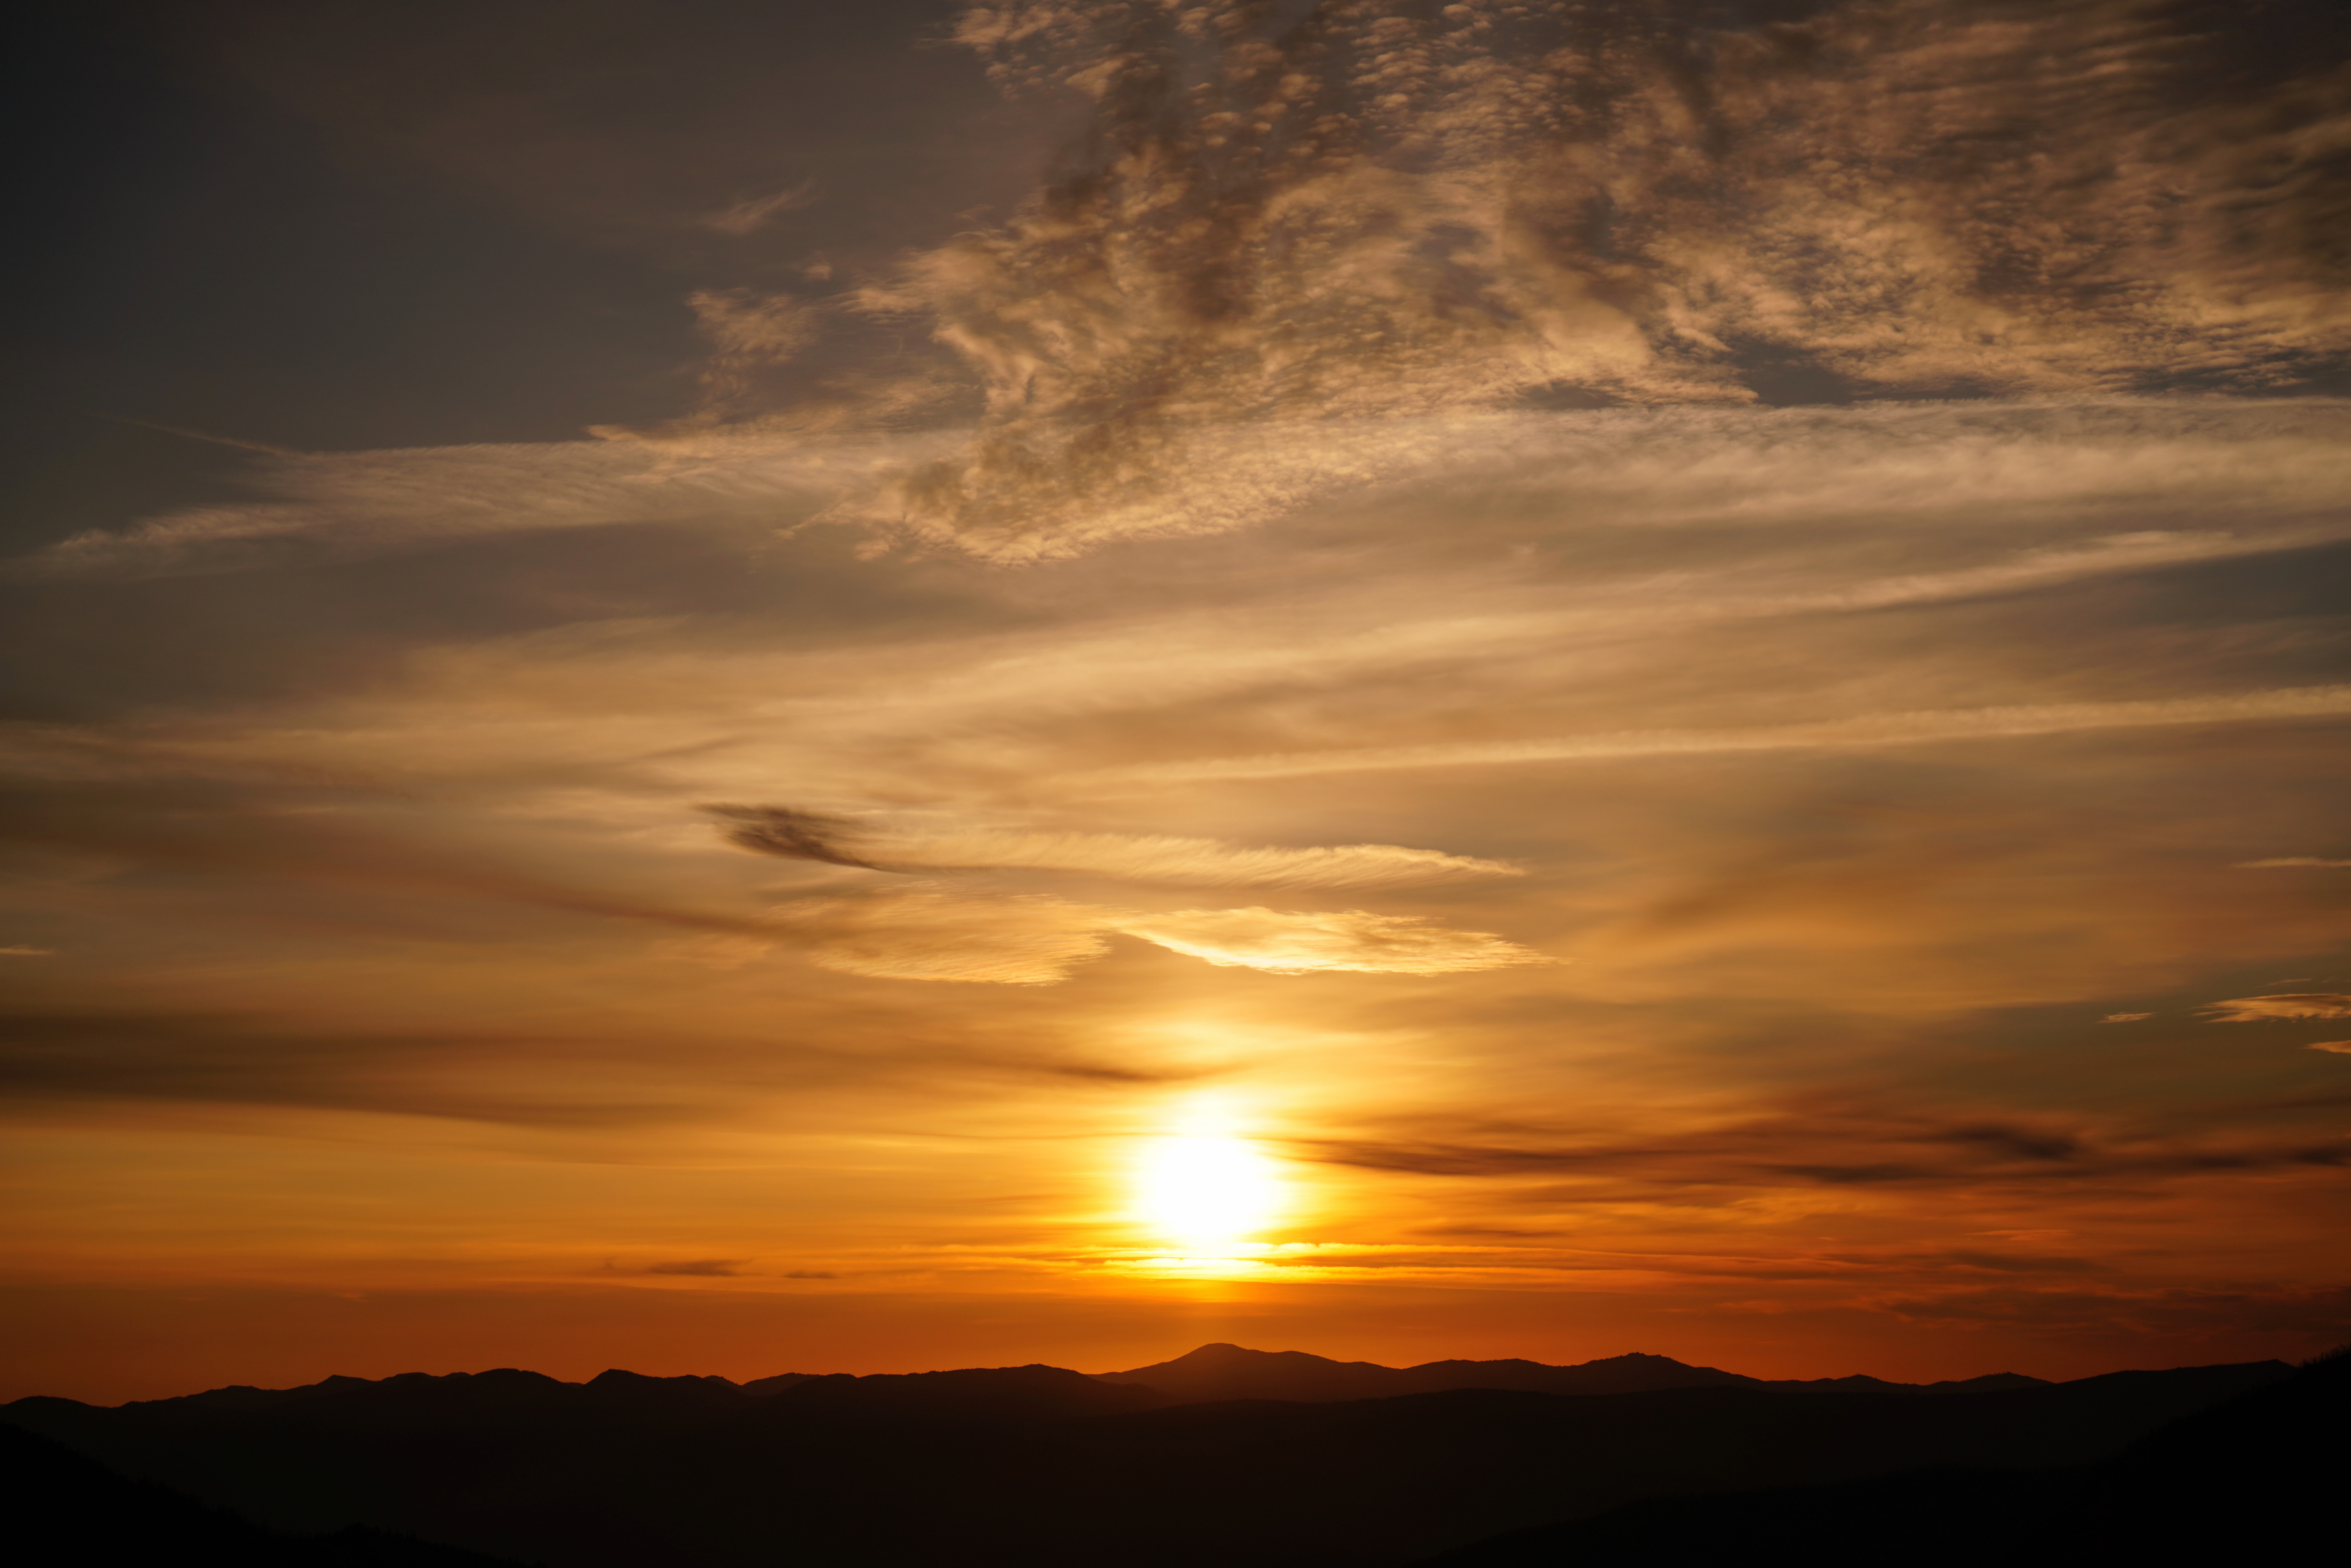 108228 download wallpaper Nature, Sunset, Clouds, Hills, Sky, Sun screensavers and pictures for free